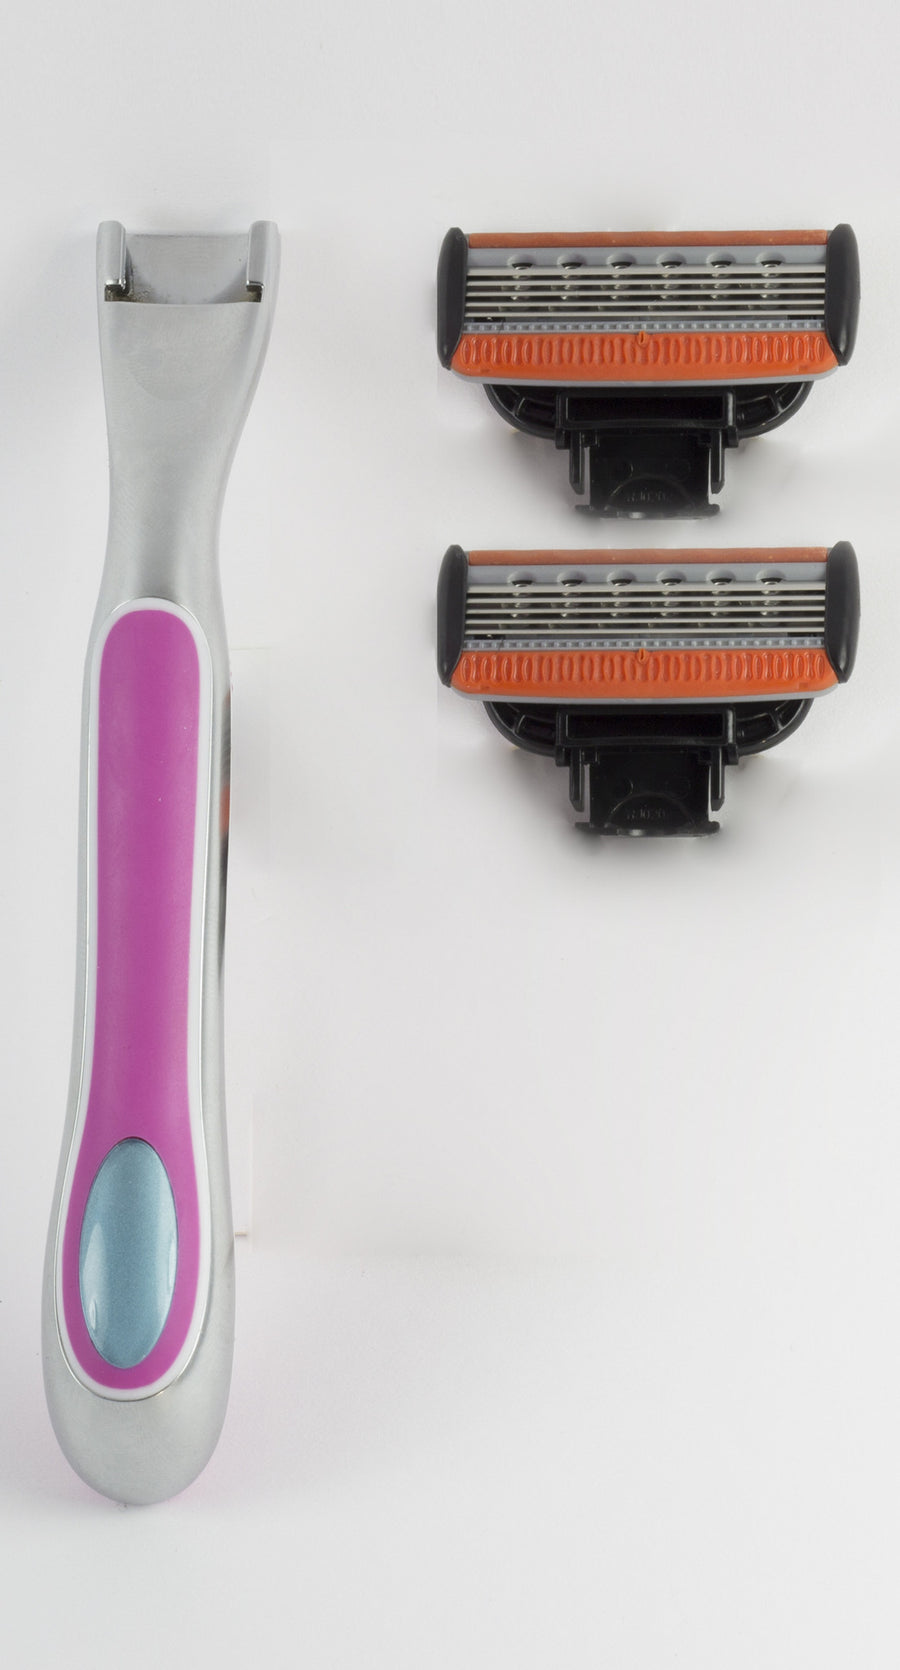 Women's Razor Heads and Handle